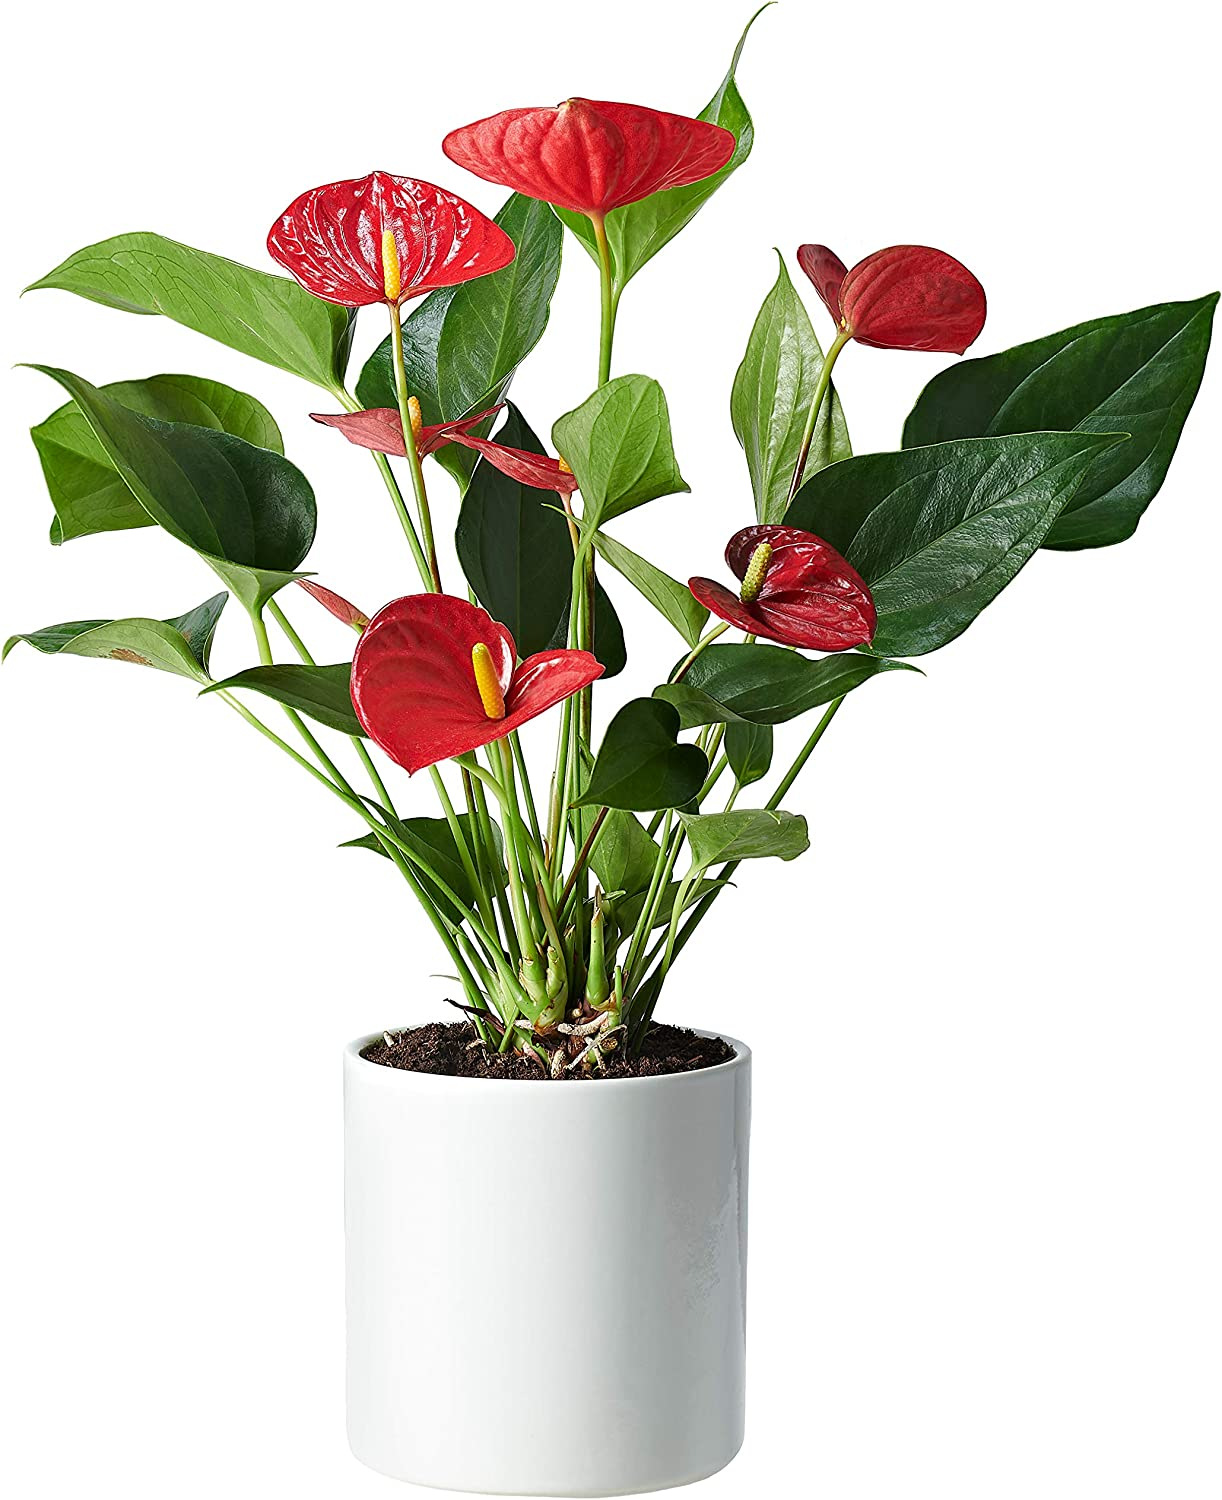 Pot Included Anthurium an Ideal Fresh Flower Gift for The Home Free UK Delivery Plant Delivered Our Anthuriums are The Perfect Indoor House Plants Free Personalised Card /& Message